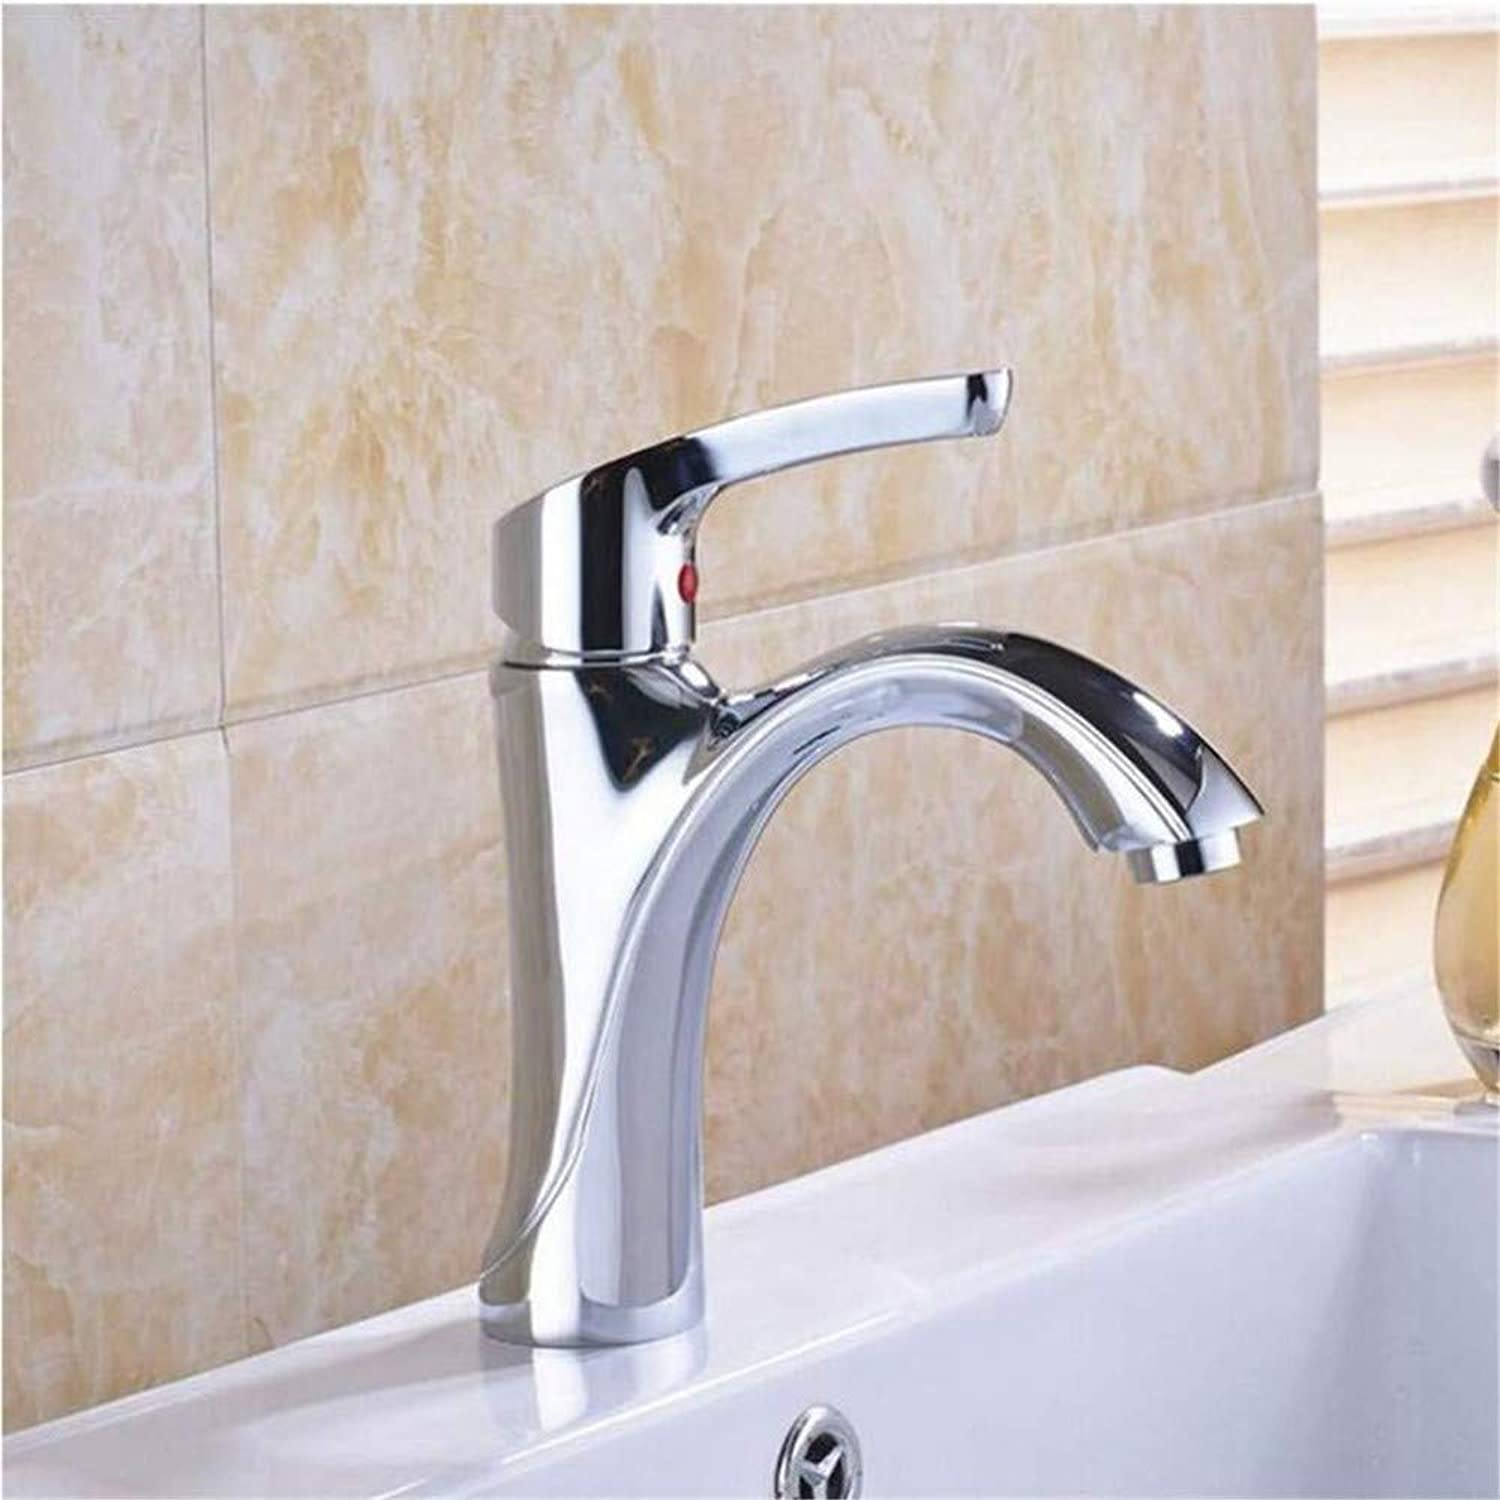 Basin Taps Swivel Spout Faucet Single Handle Stainless Steel Mixer Hot and Cold Vessel Sink Water Taps